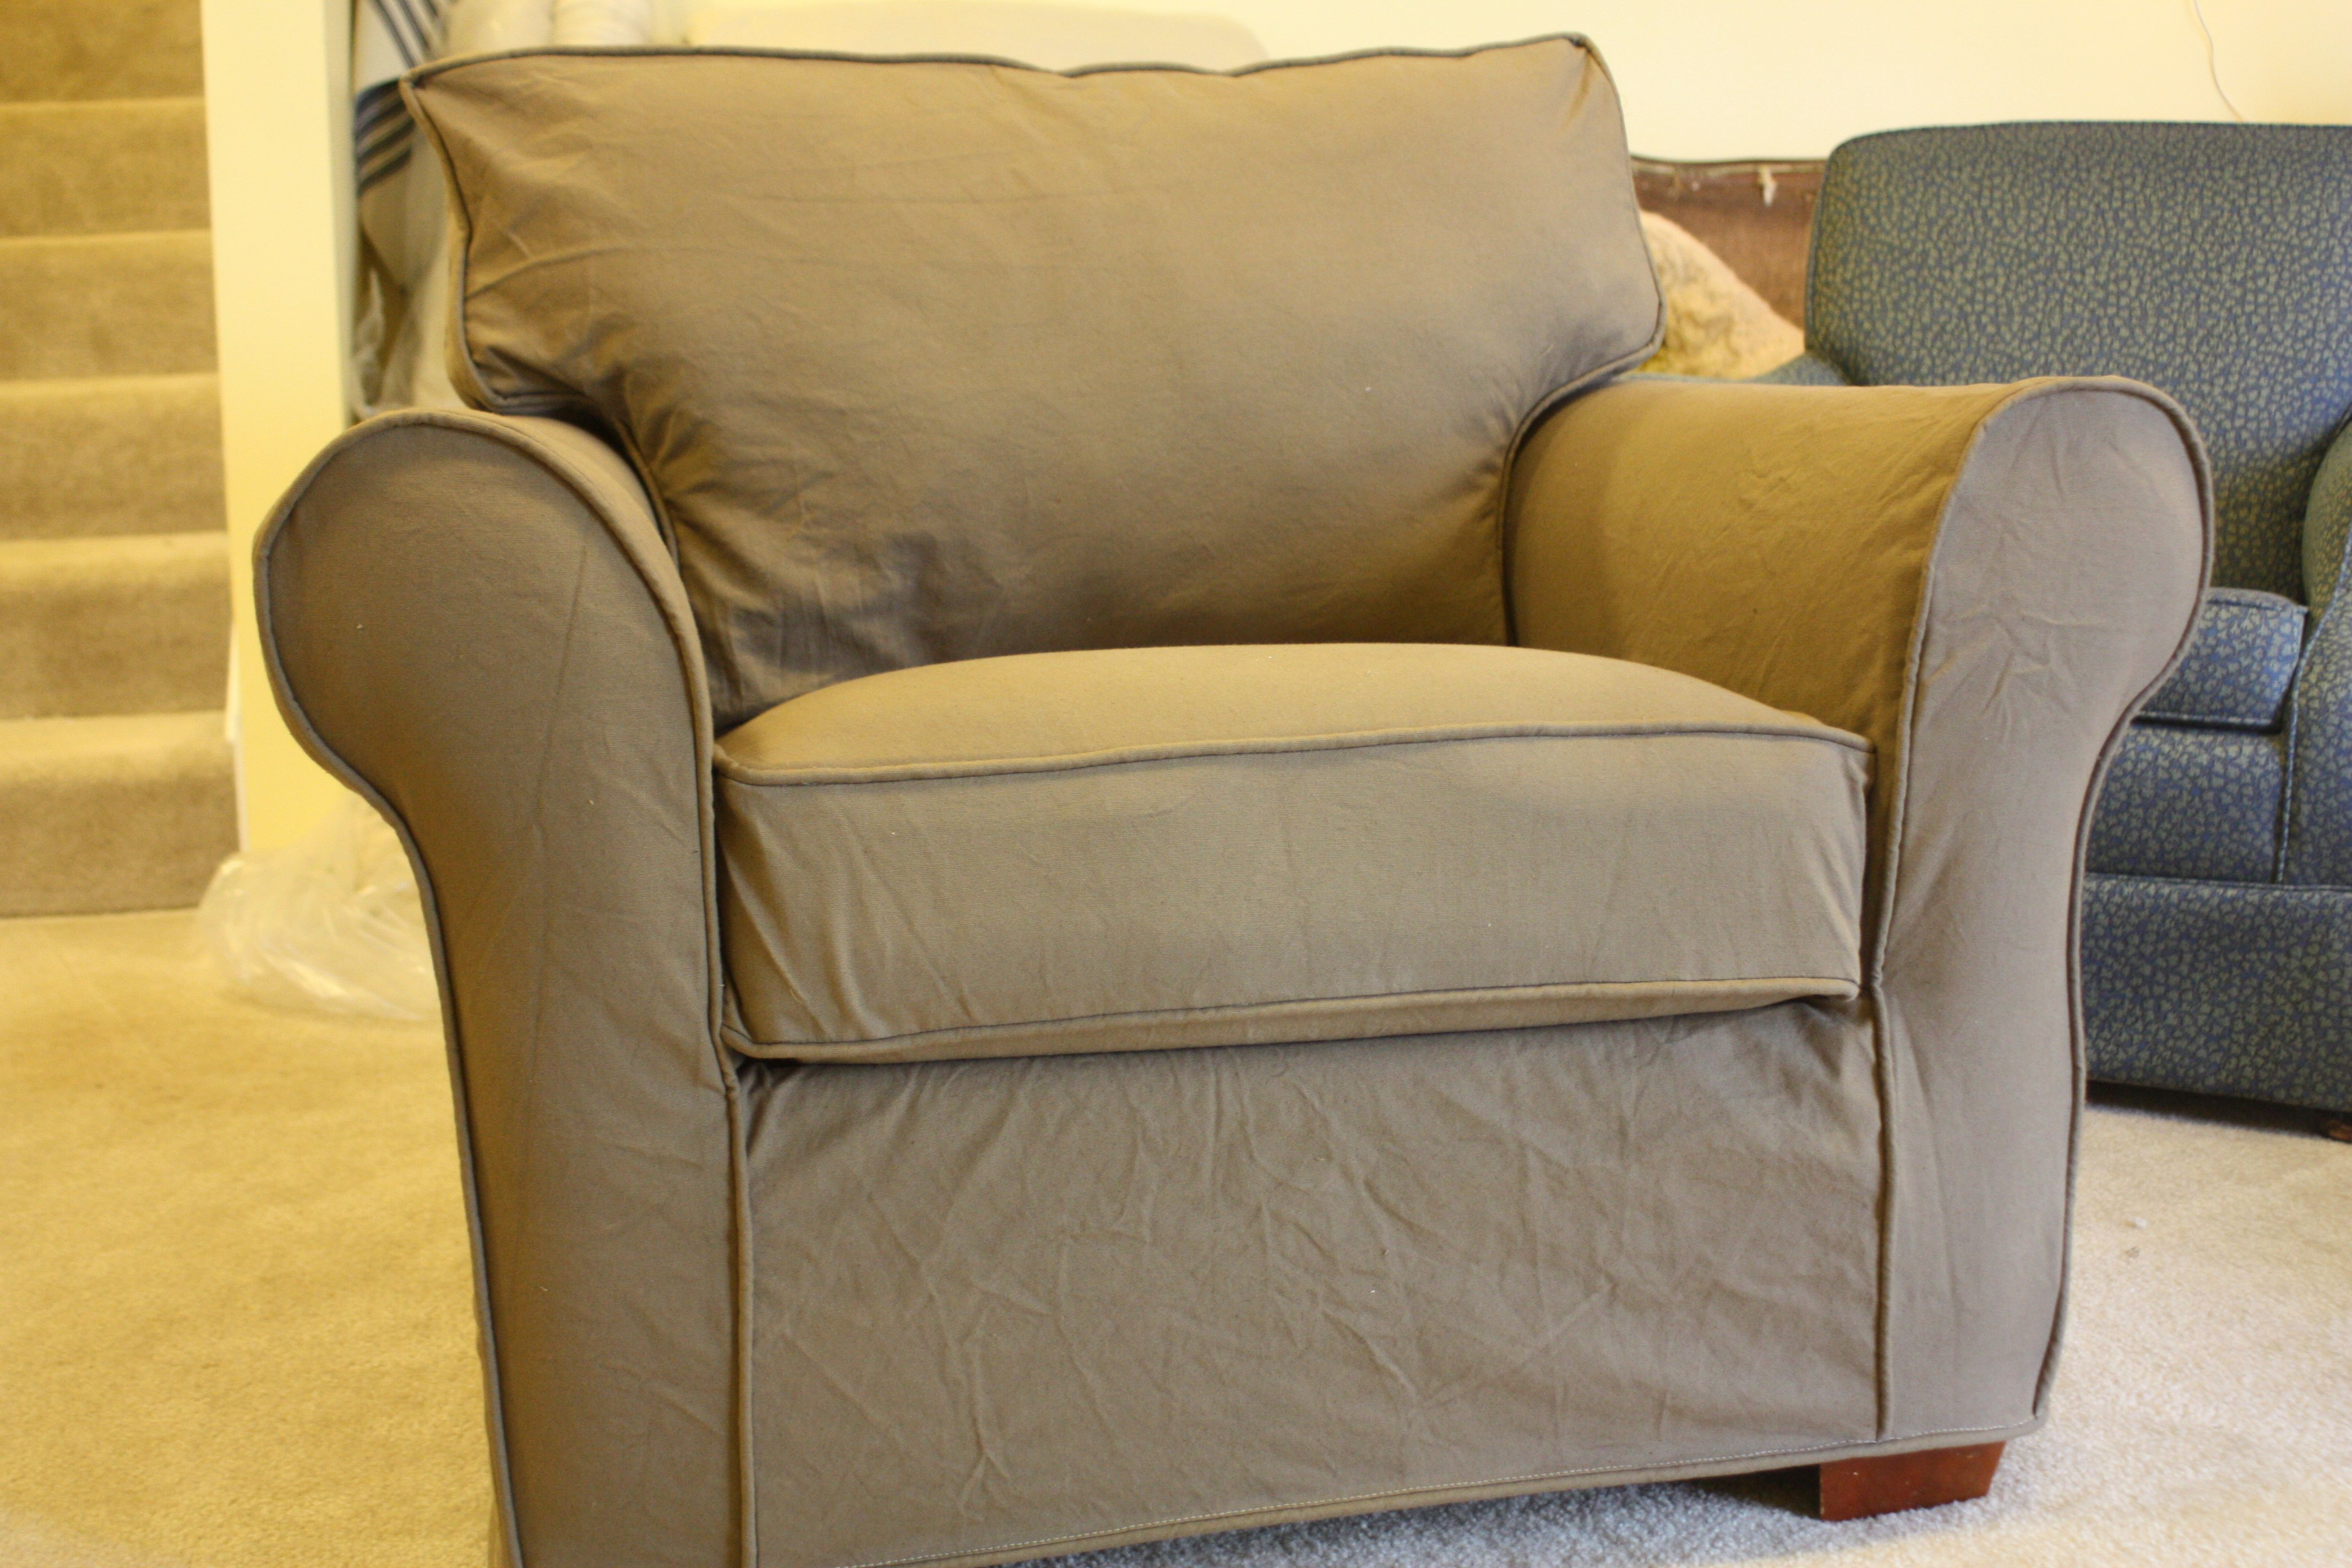 Canvas chair ottoman slipcovers for chairs chair and